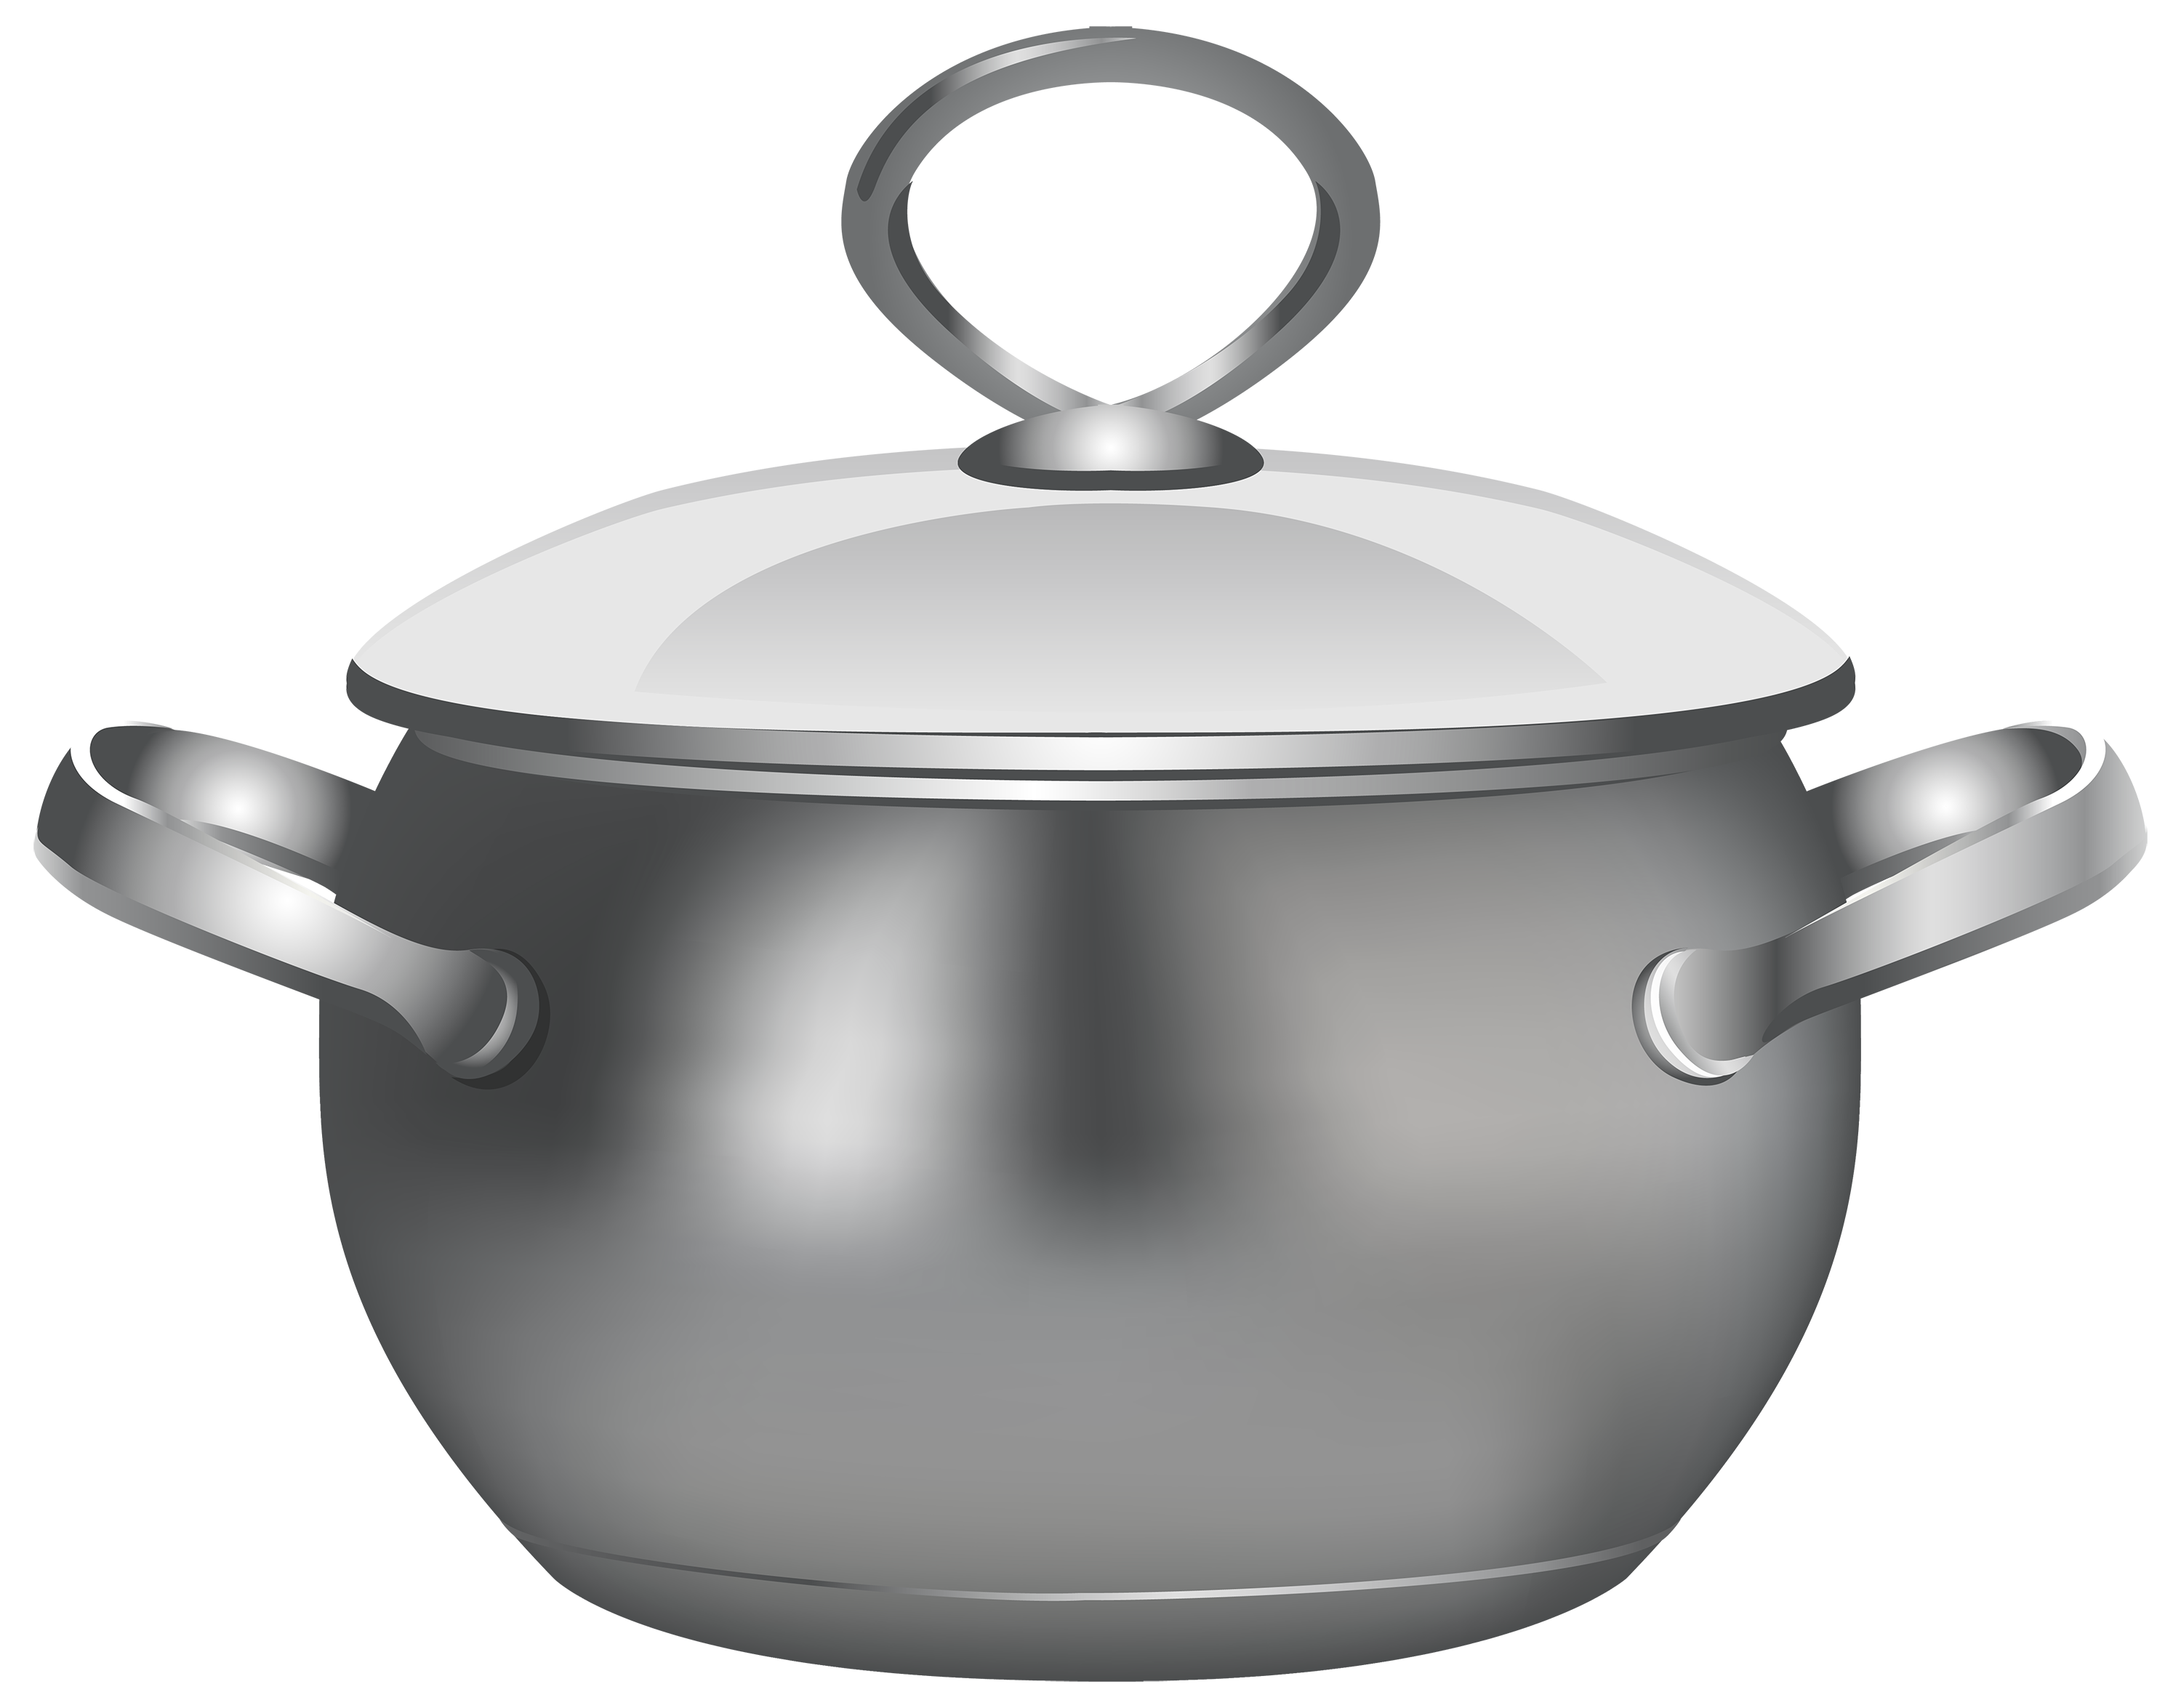 Pot clipart lid. Cooking best web highquality